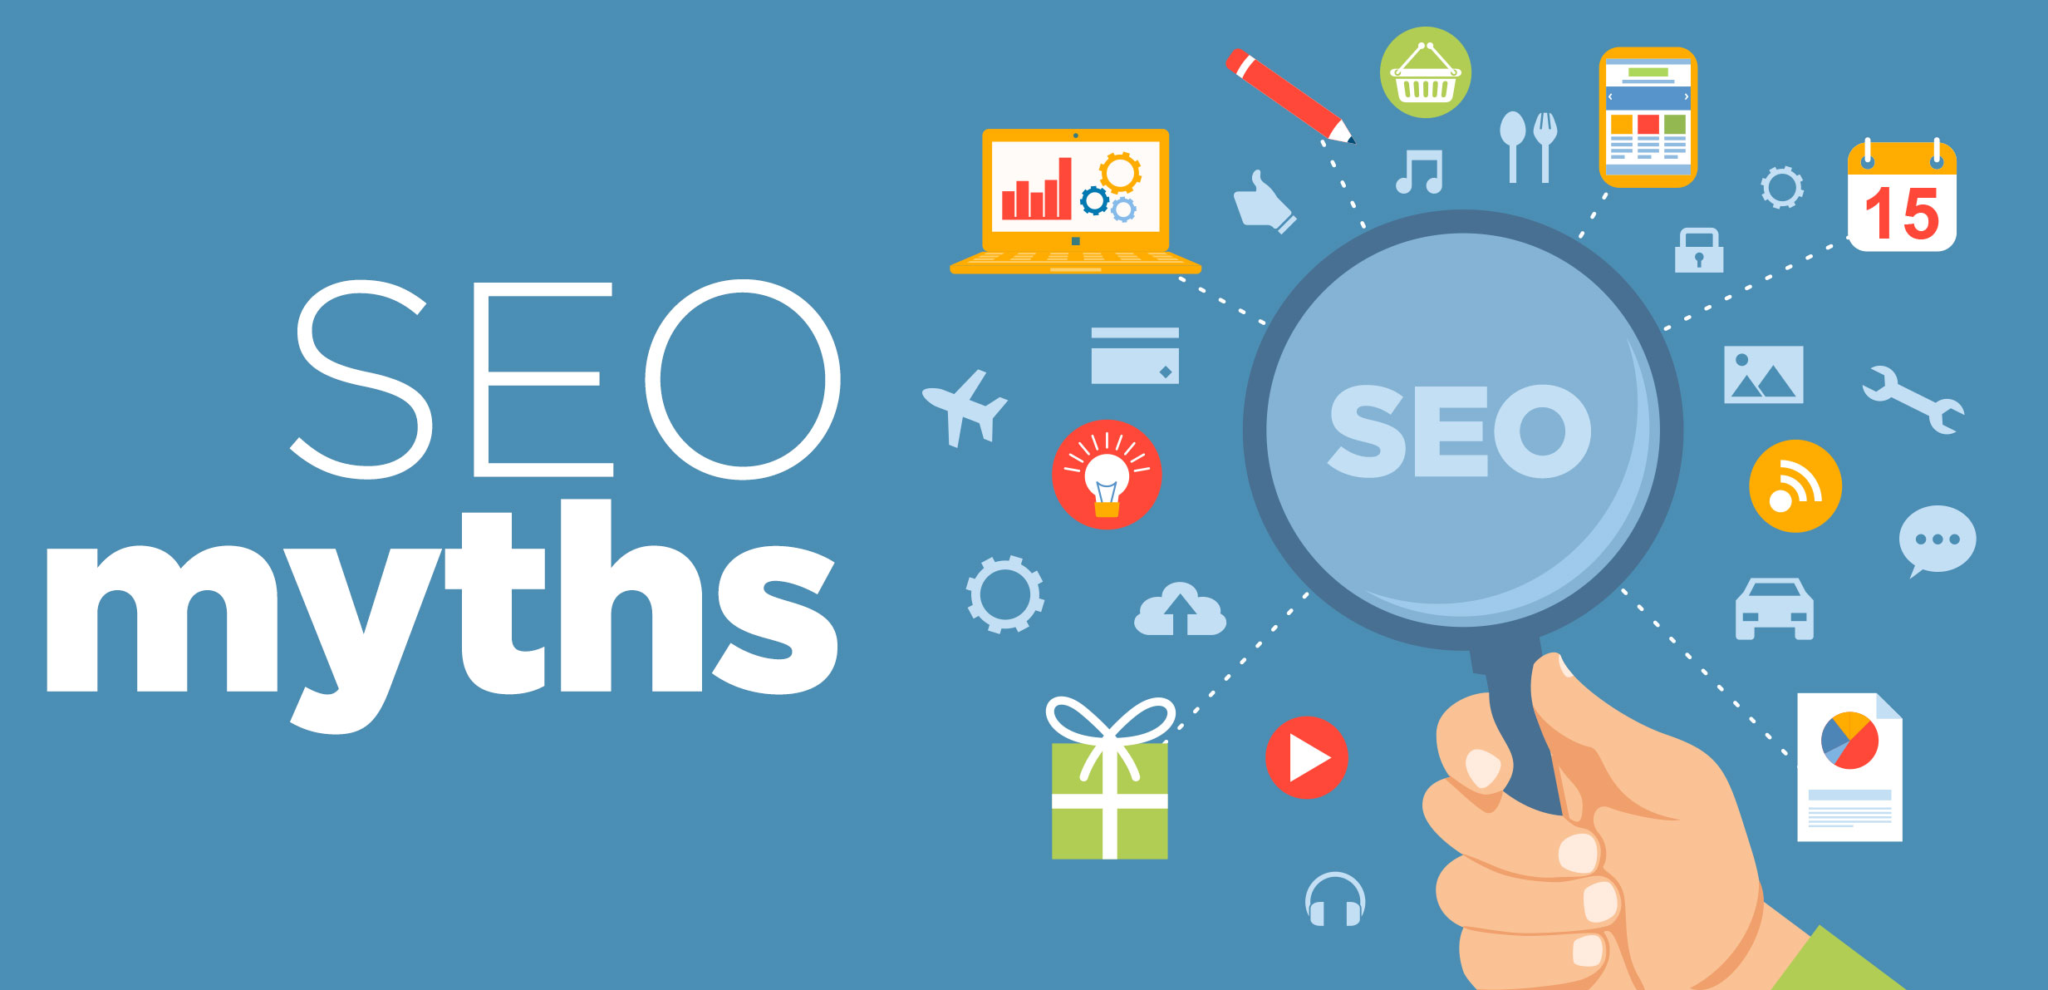 5 SEO Myths You May Be Wasting Your Time On